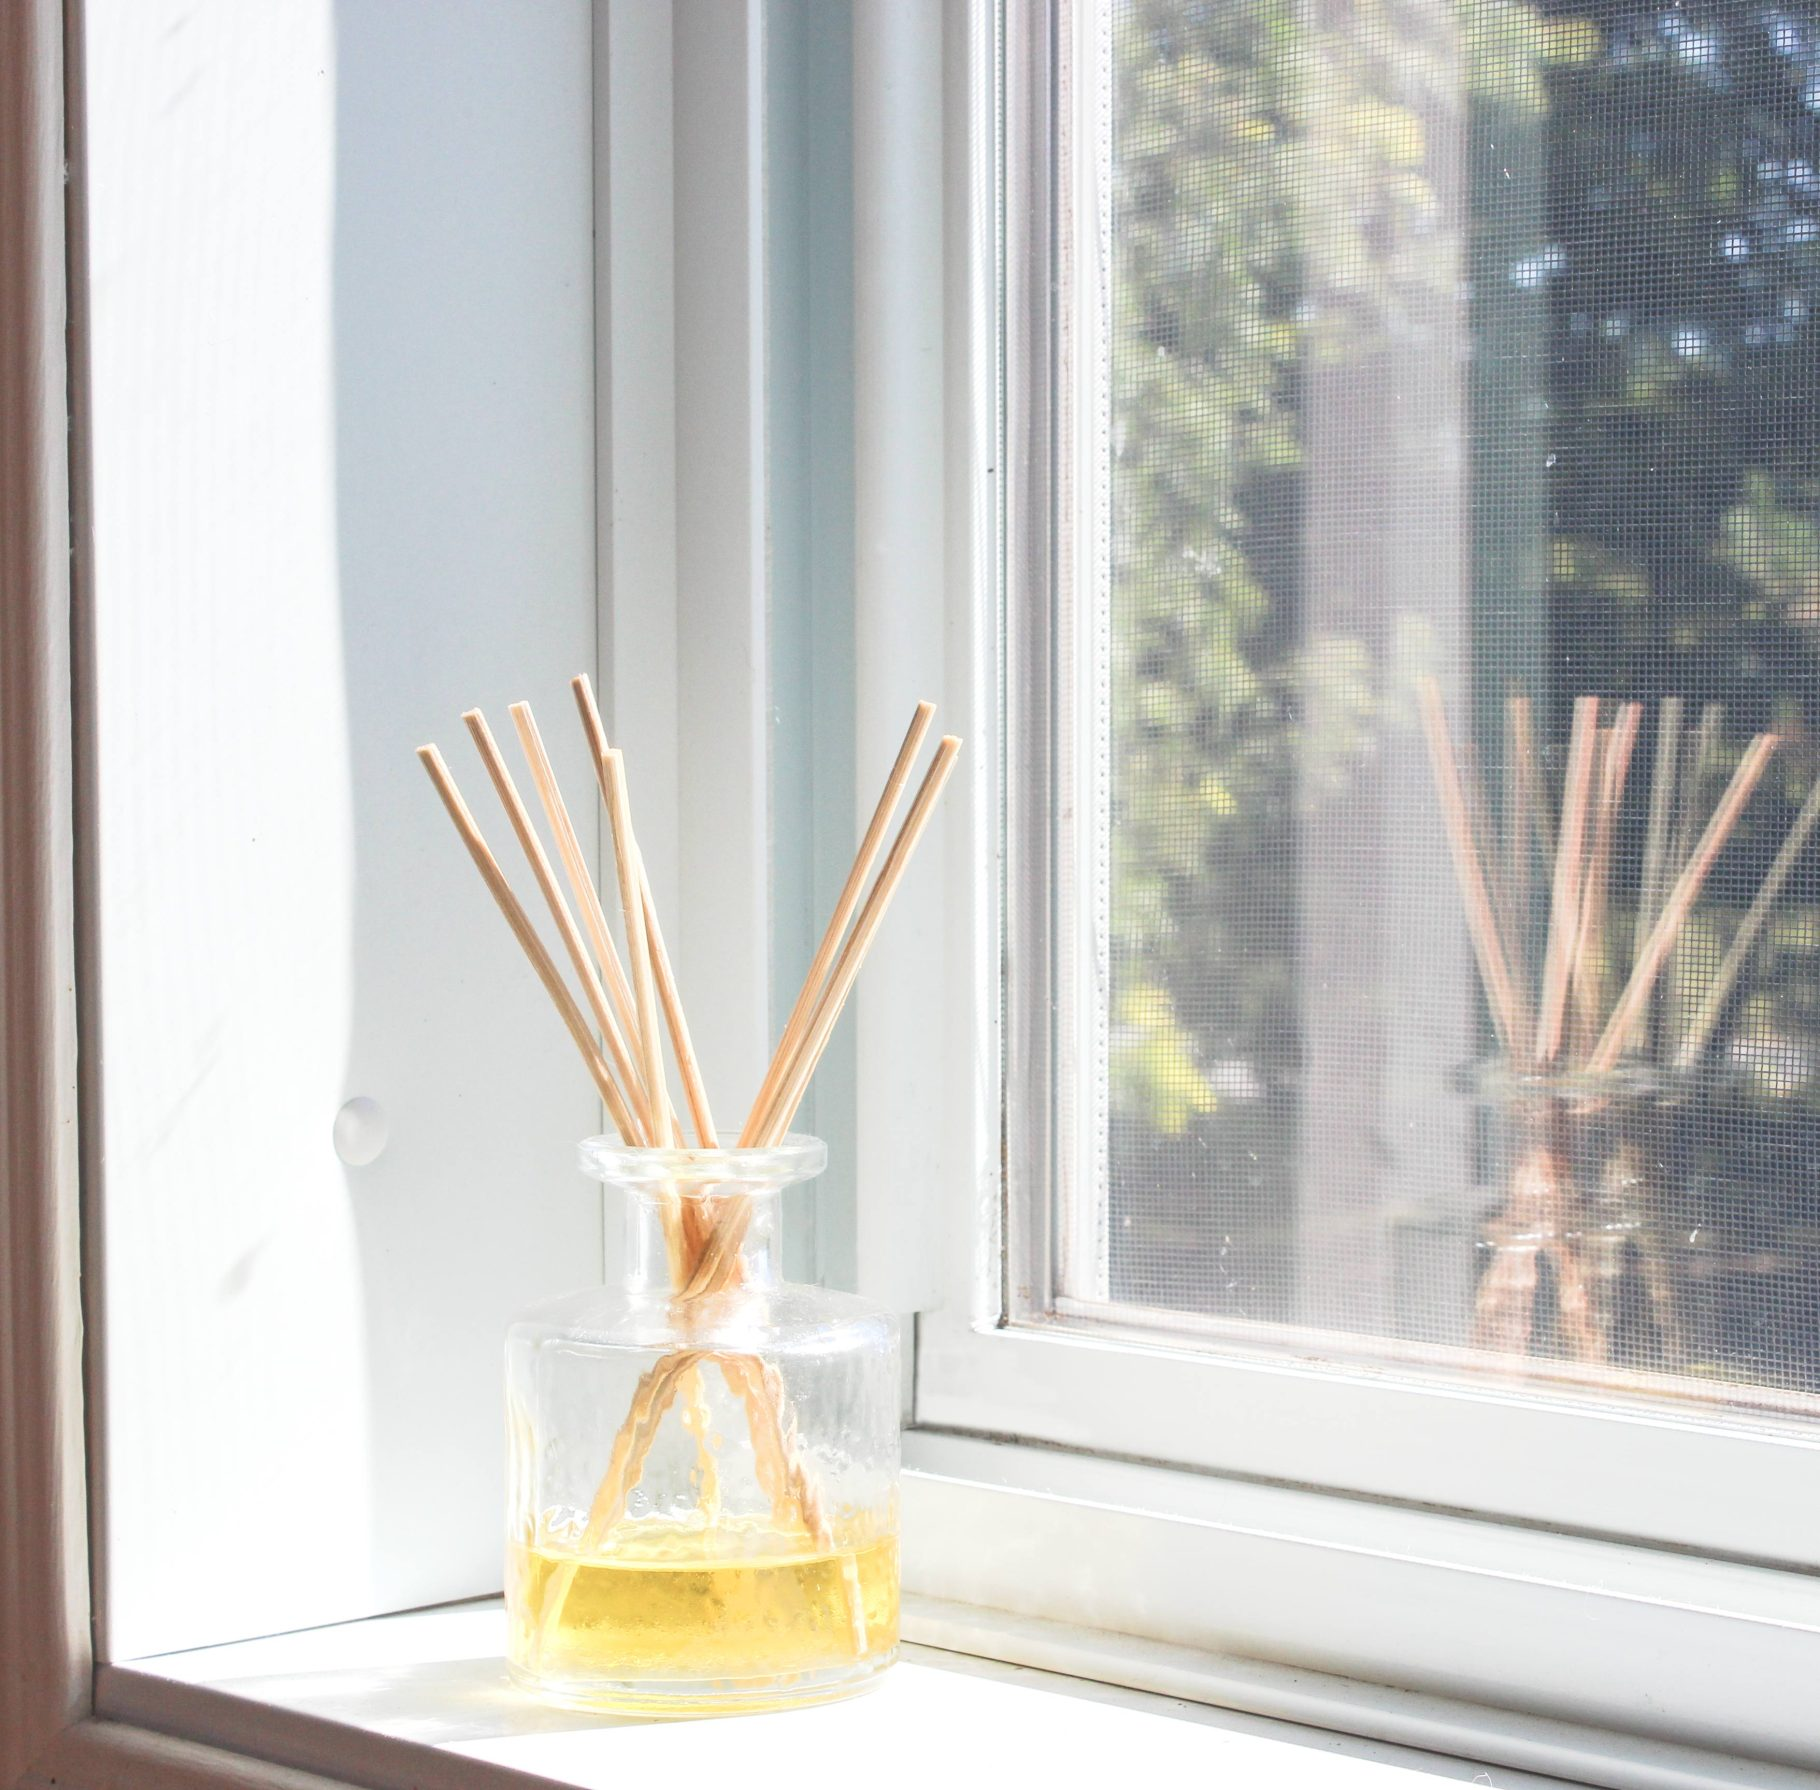 How to Scent your Home Naturally + Avoid Toxic Air Fresheners